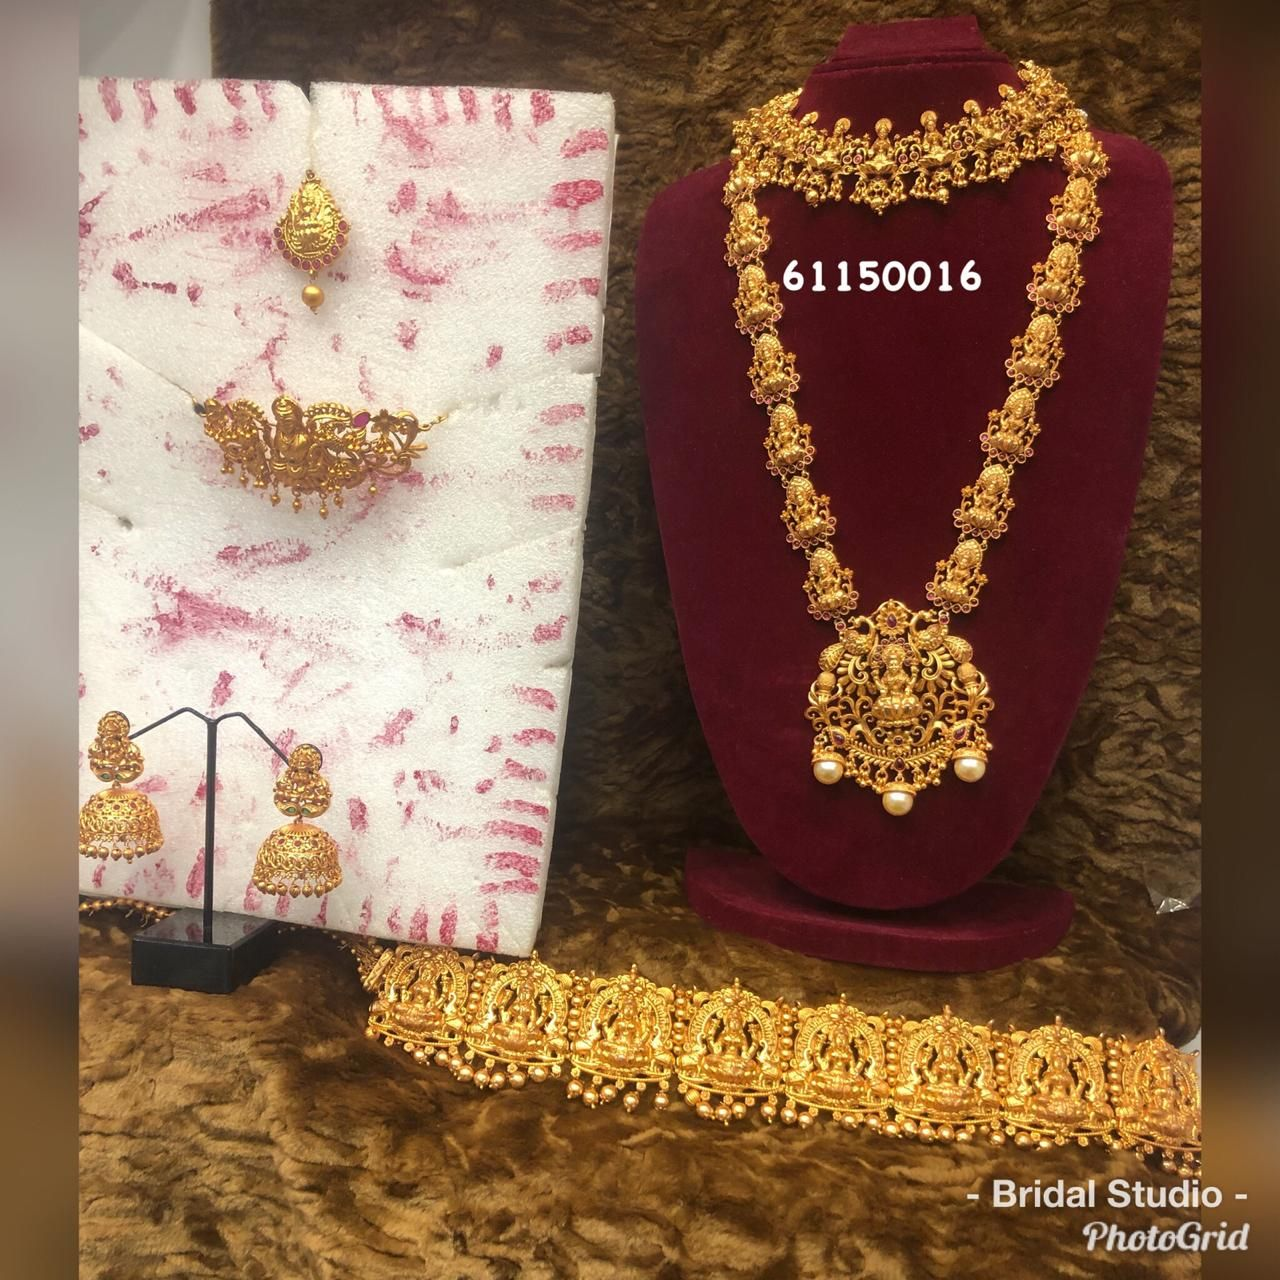 Rent Jewelleries Bridal Jewelry Sets Jewelry Bridal Jewelry